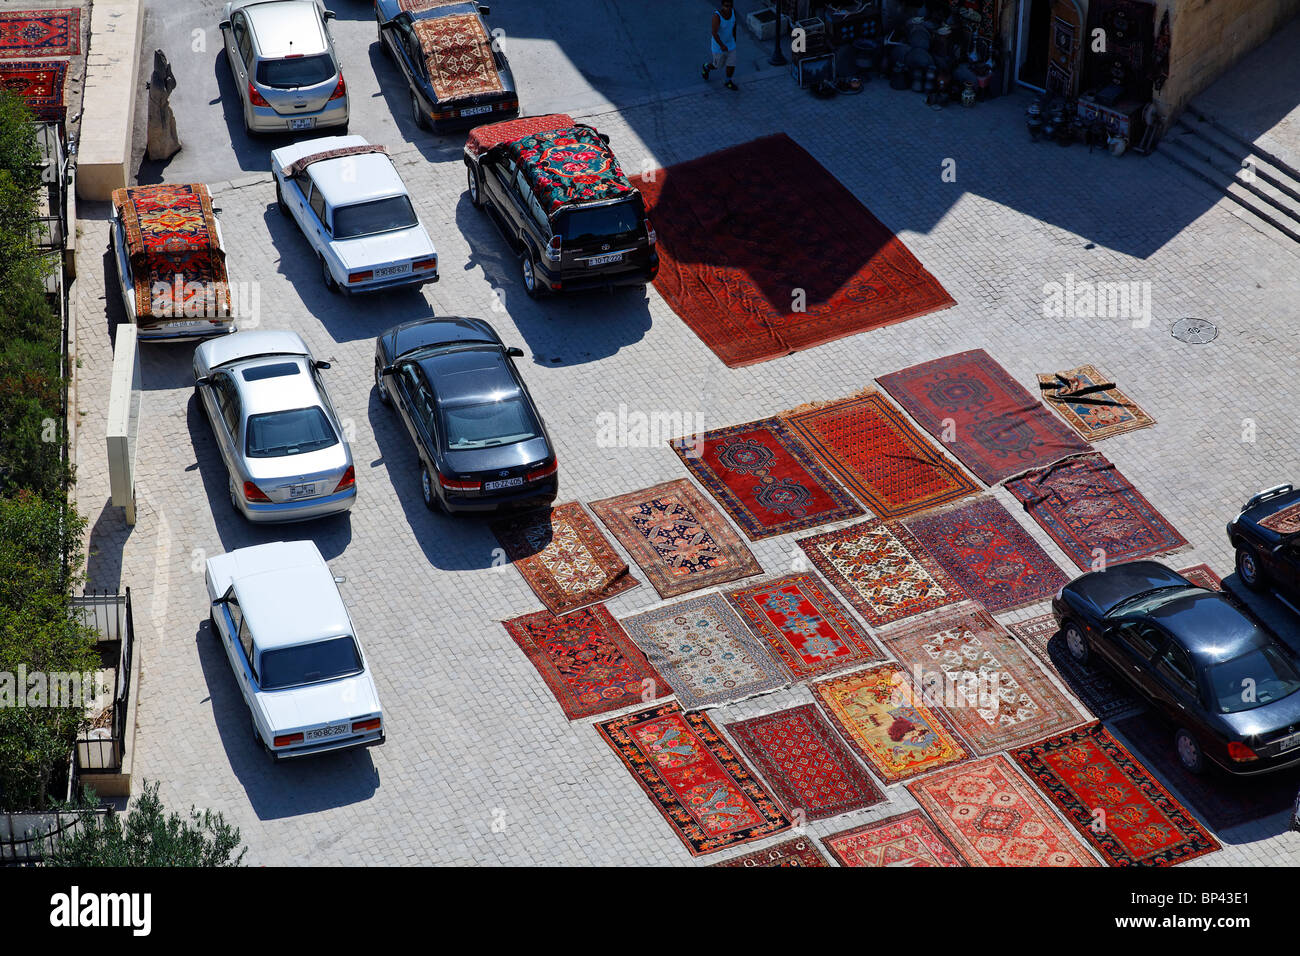 Azerbaijan - Baku - carpets laid out on the road in Baku Old Town - Stock Image